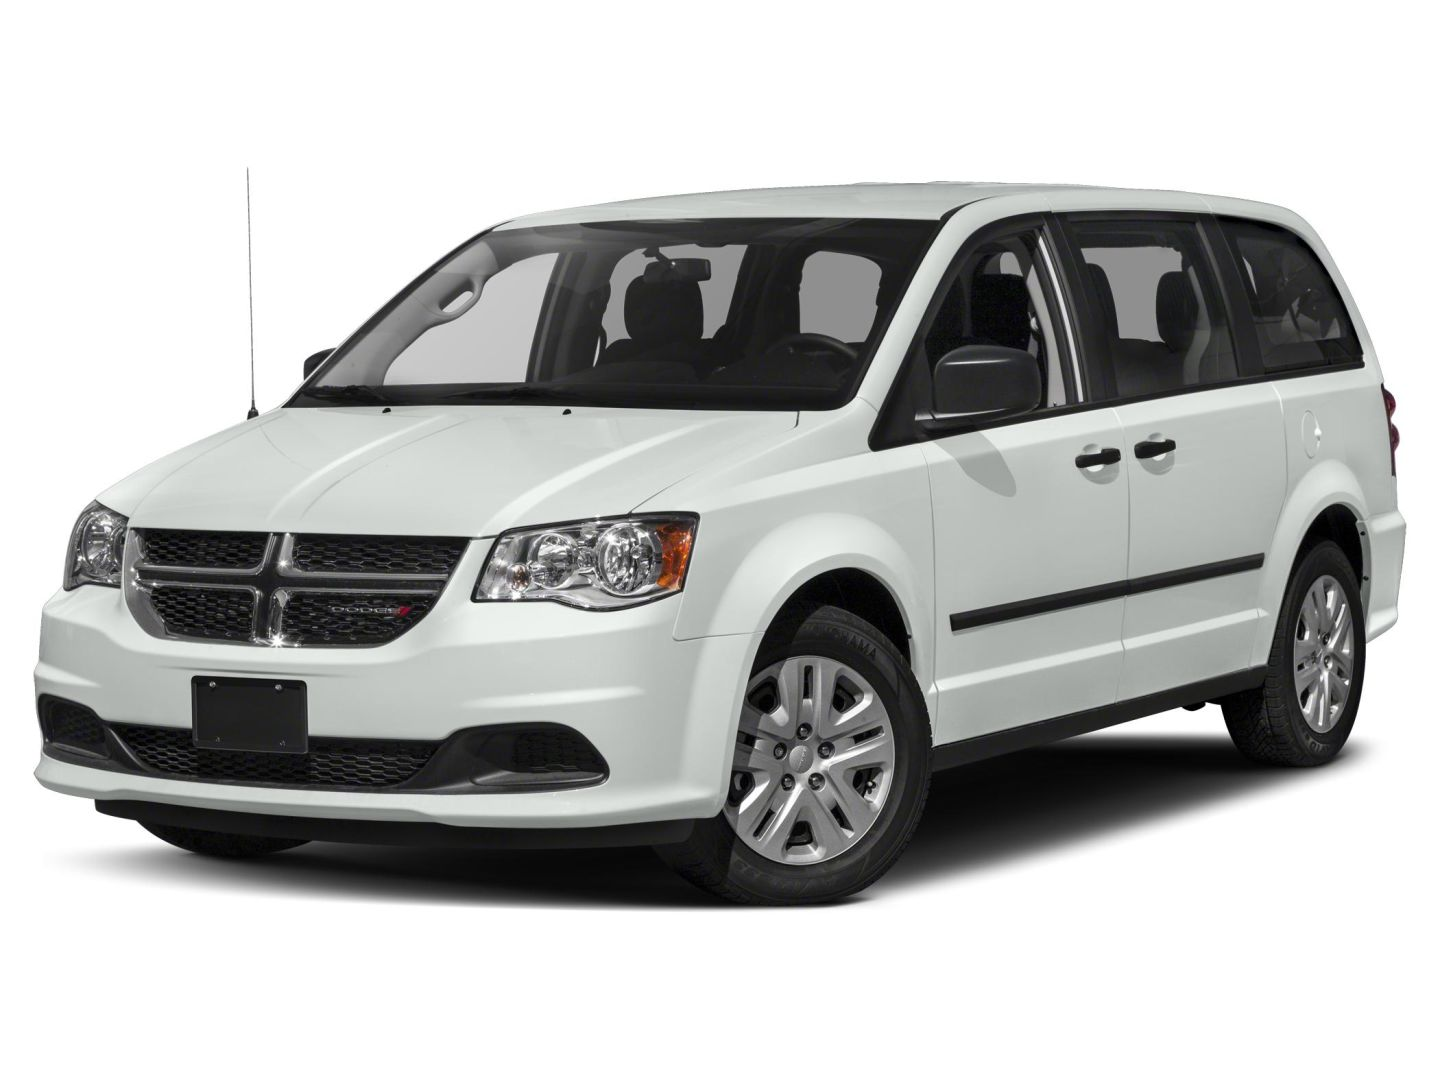 2019 Dodge Grand Caravan 35th Anniversary for sale in Mississauga, Ontario